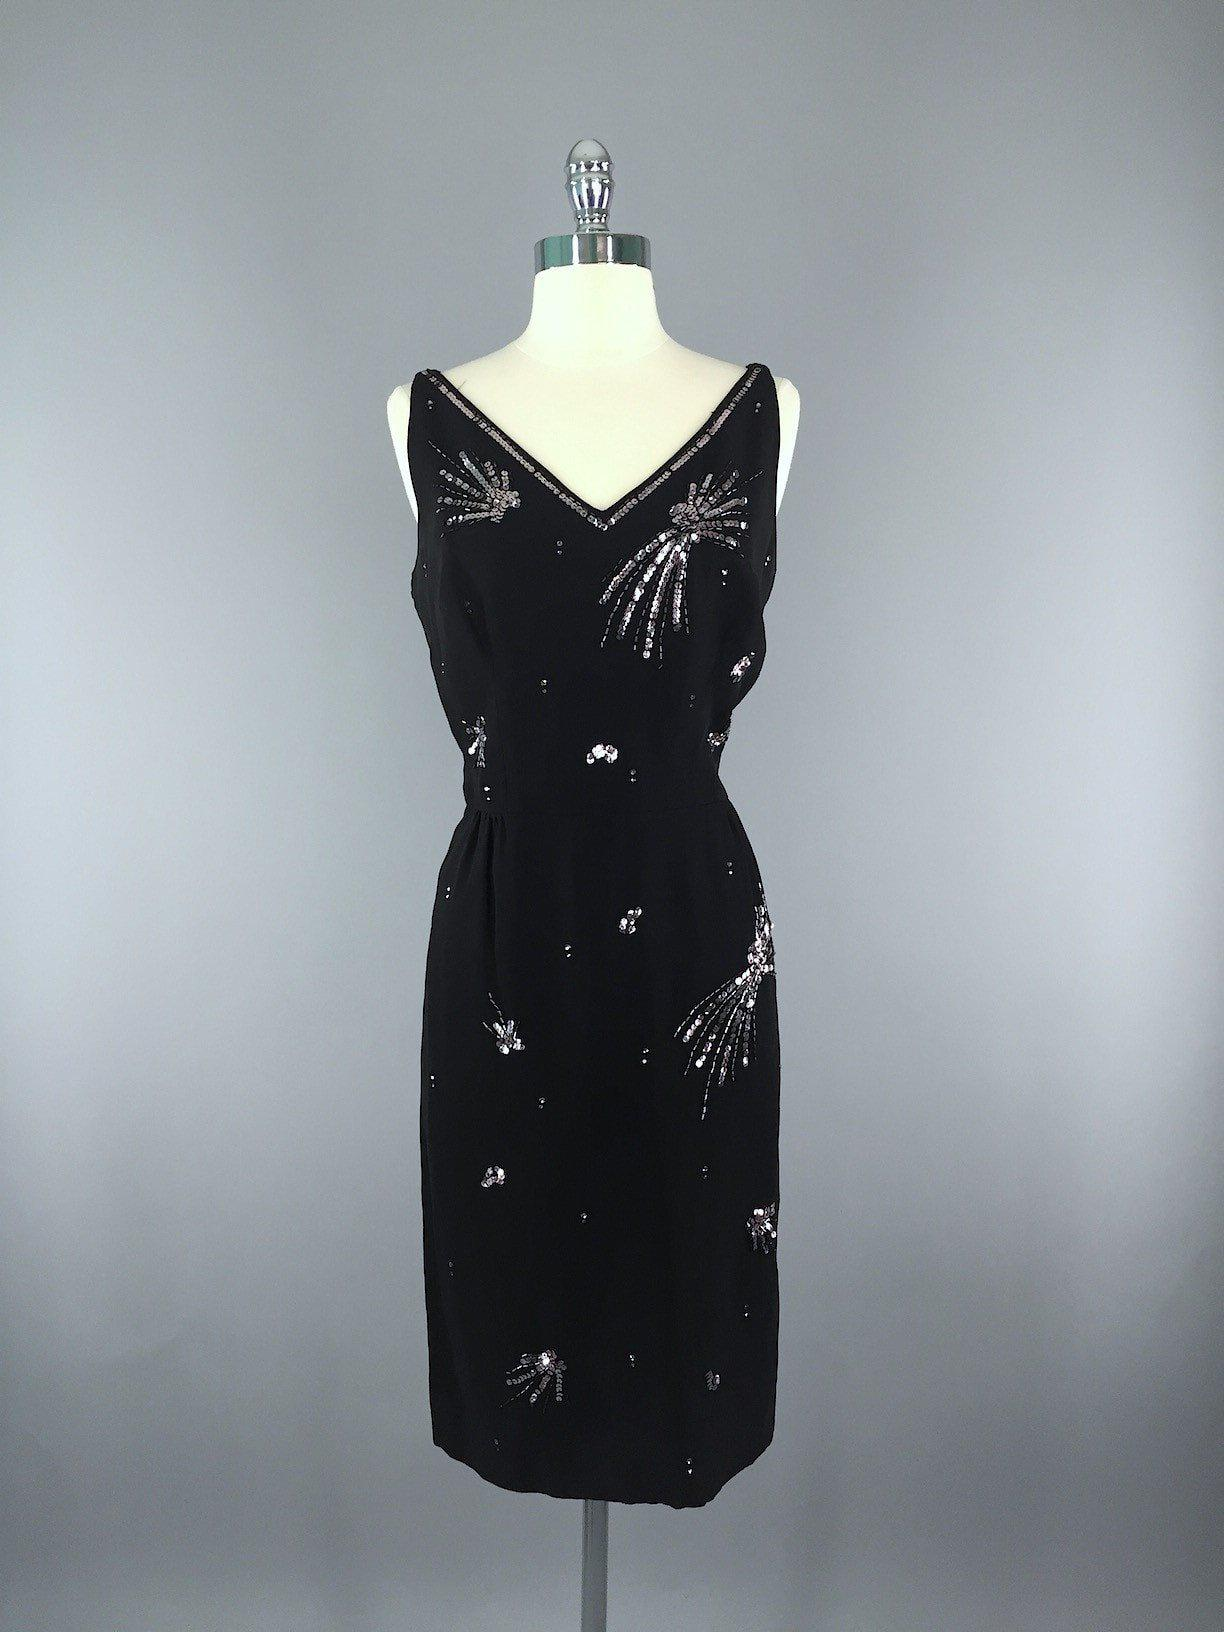 Vintage 1960s Black Sequined Party Dress Dress ThisBlueBird